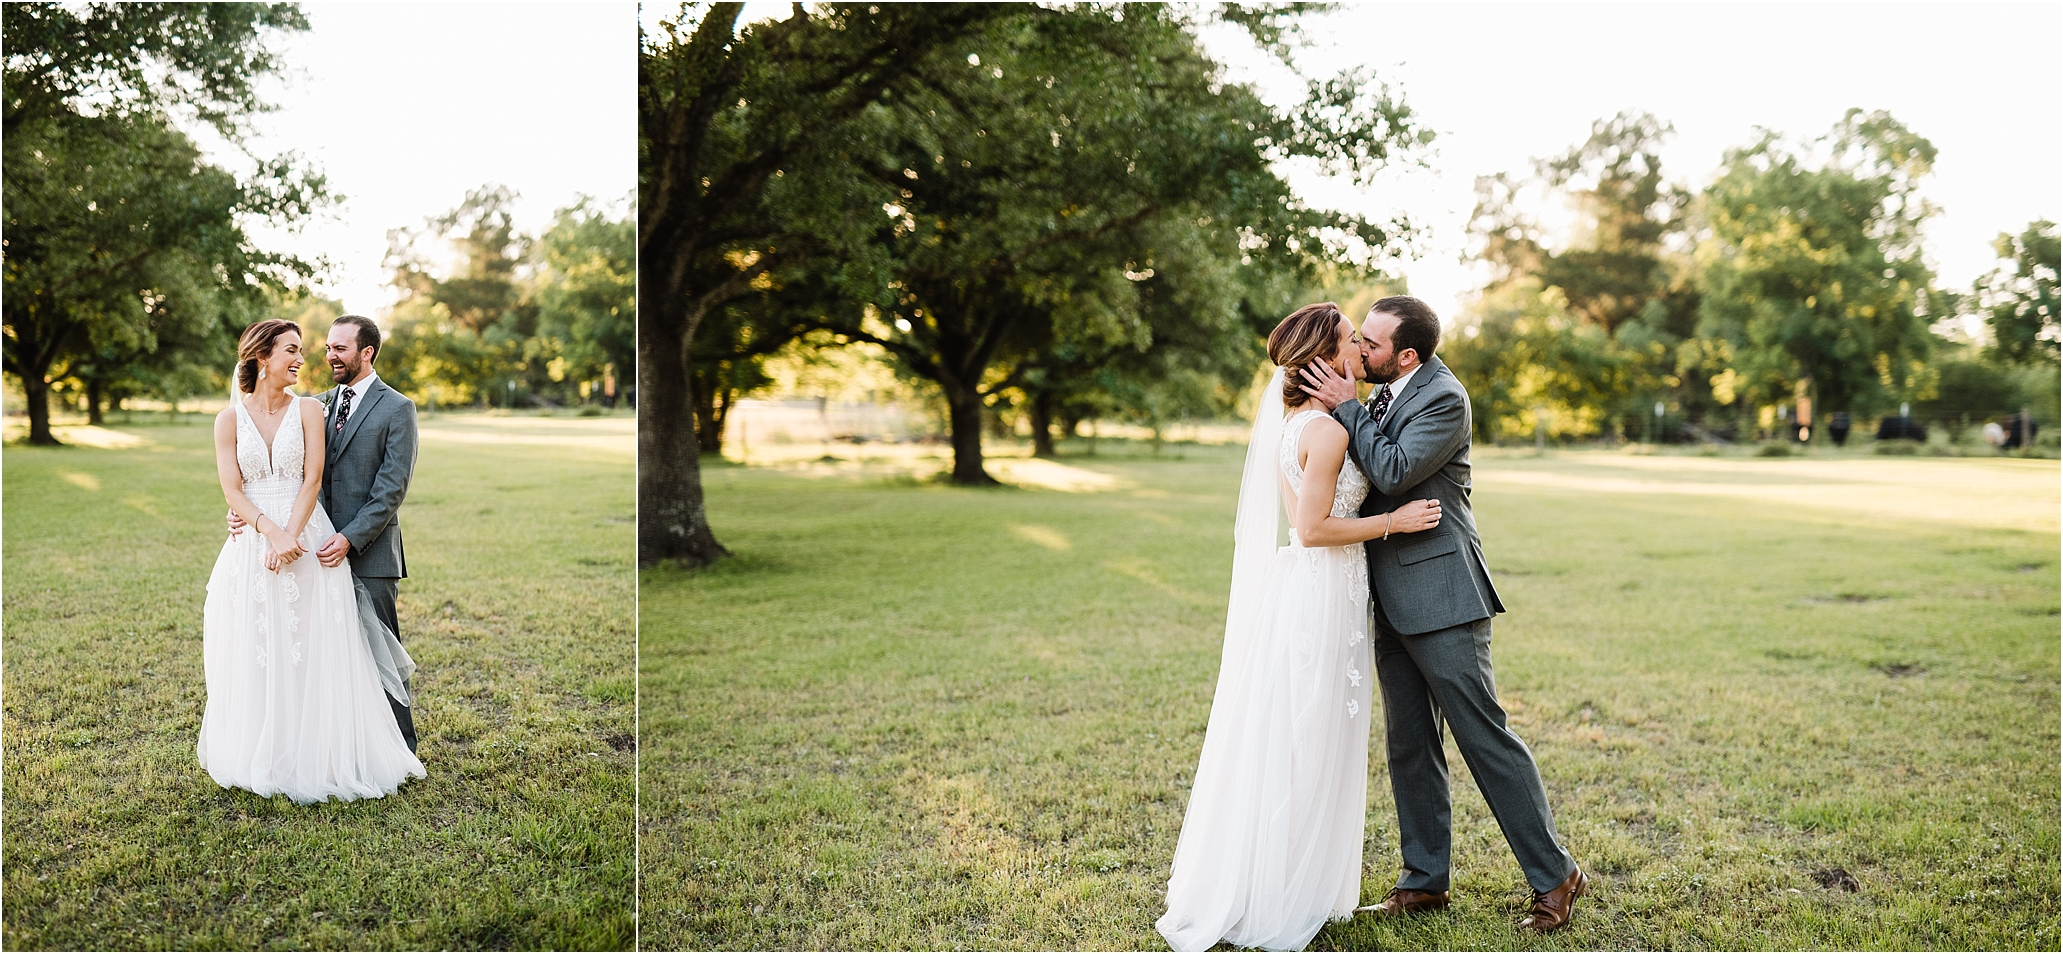 PattisonHouse_TexasWeddingPhotographer_CarlyCrockett&MattBrownWedding_0072.jpg